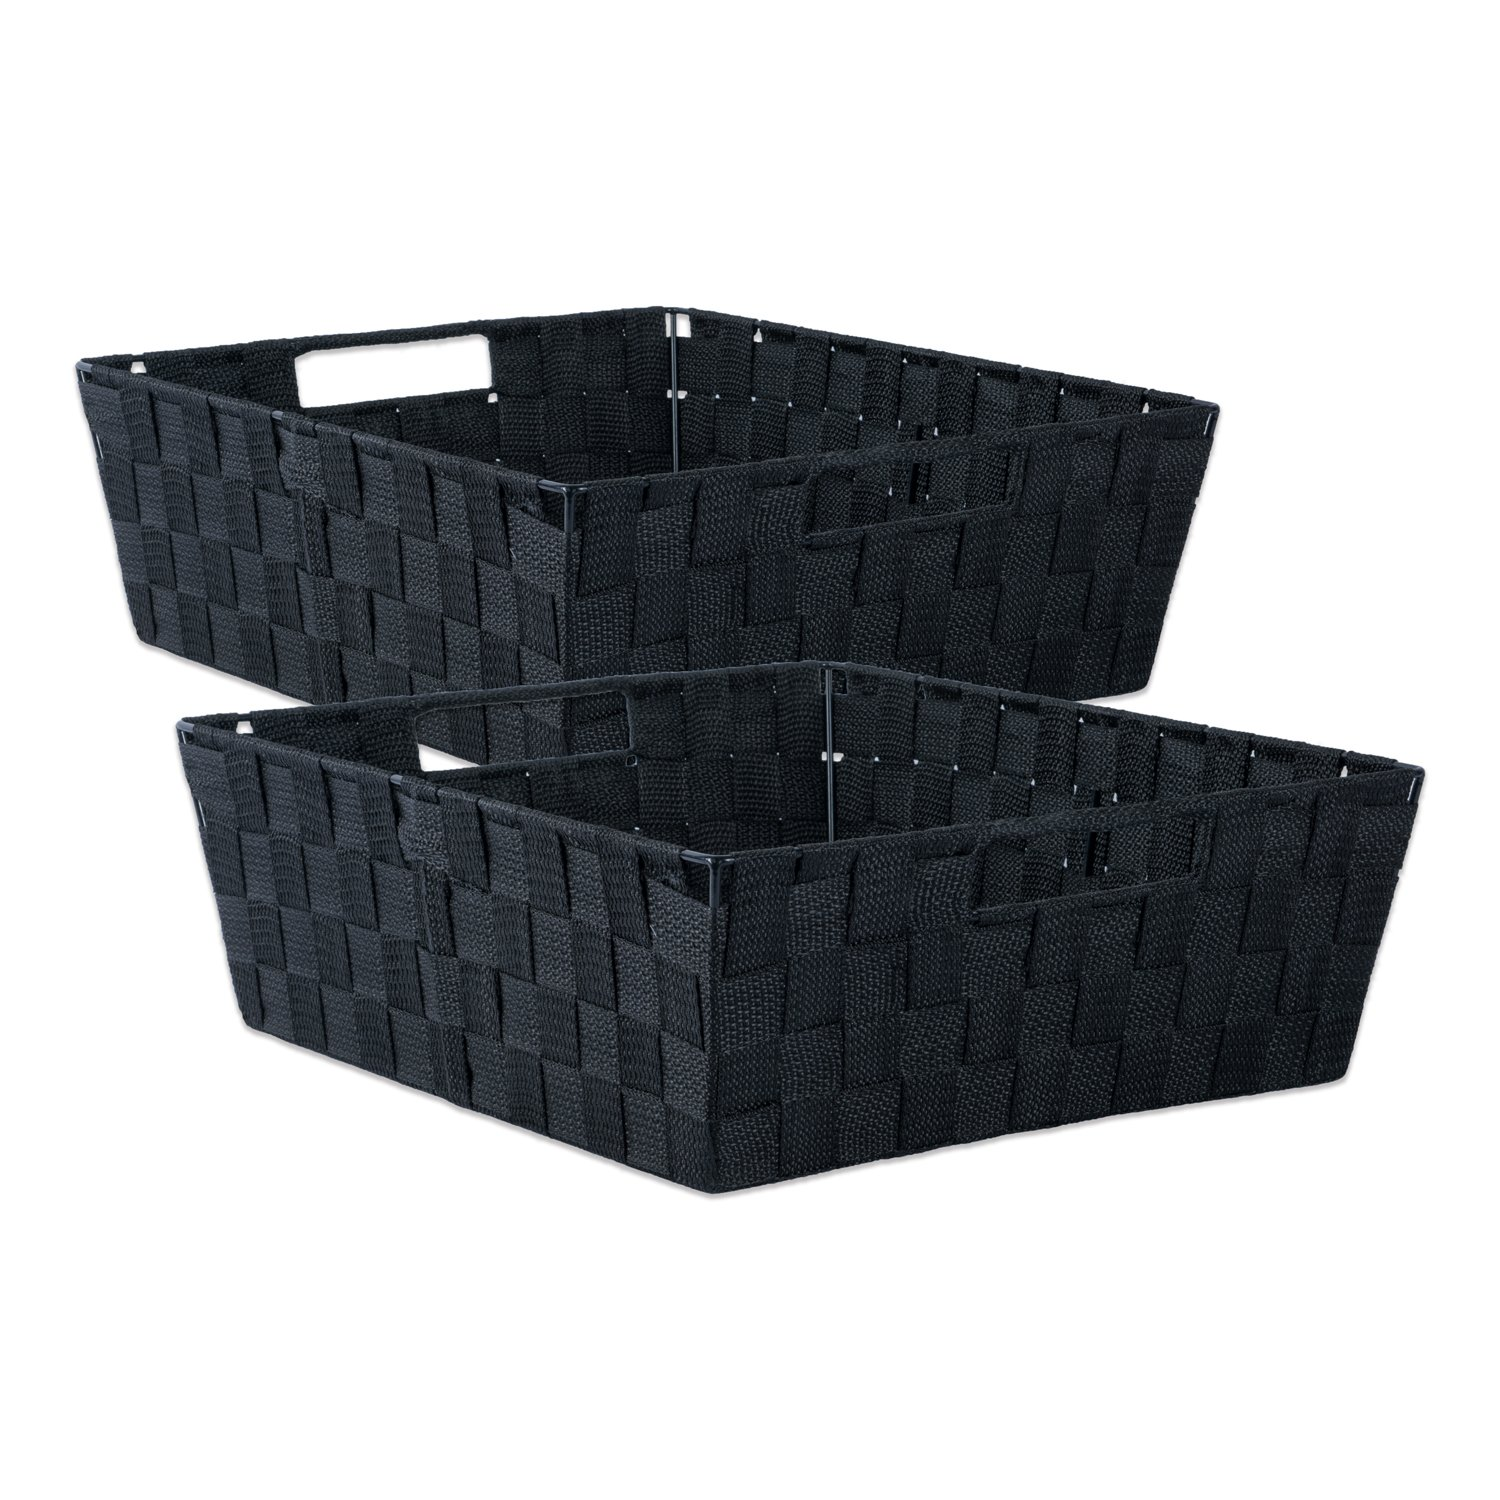 DII Durable Trapezoid Woven Nylon Storage Bin or Basket for Organizing Your Home, Office, or Closets (Tray - 13x15x5'') Black - Set of 2